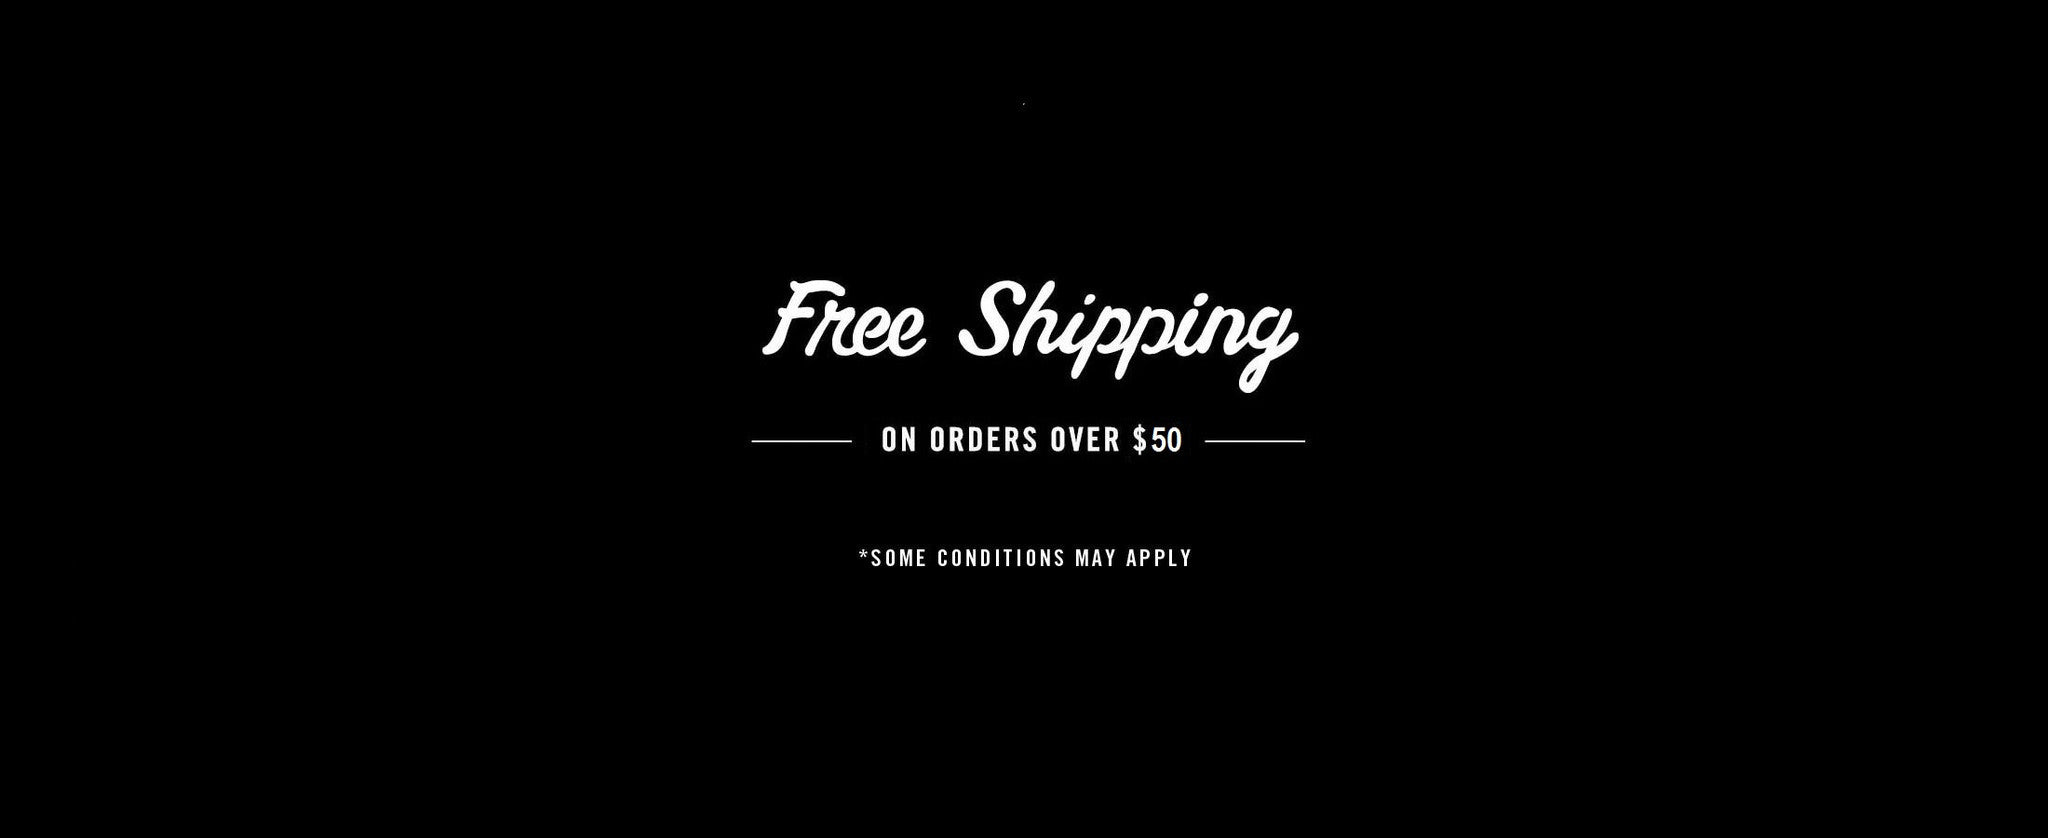 FREE SHIPPING $50 and over